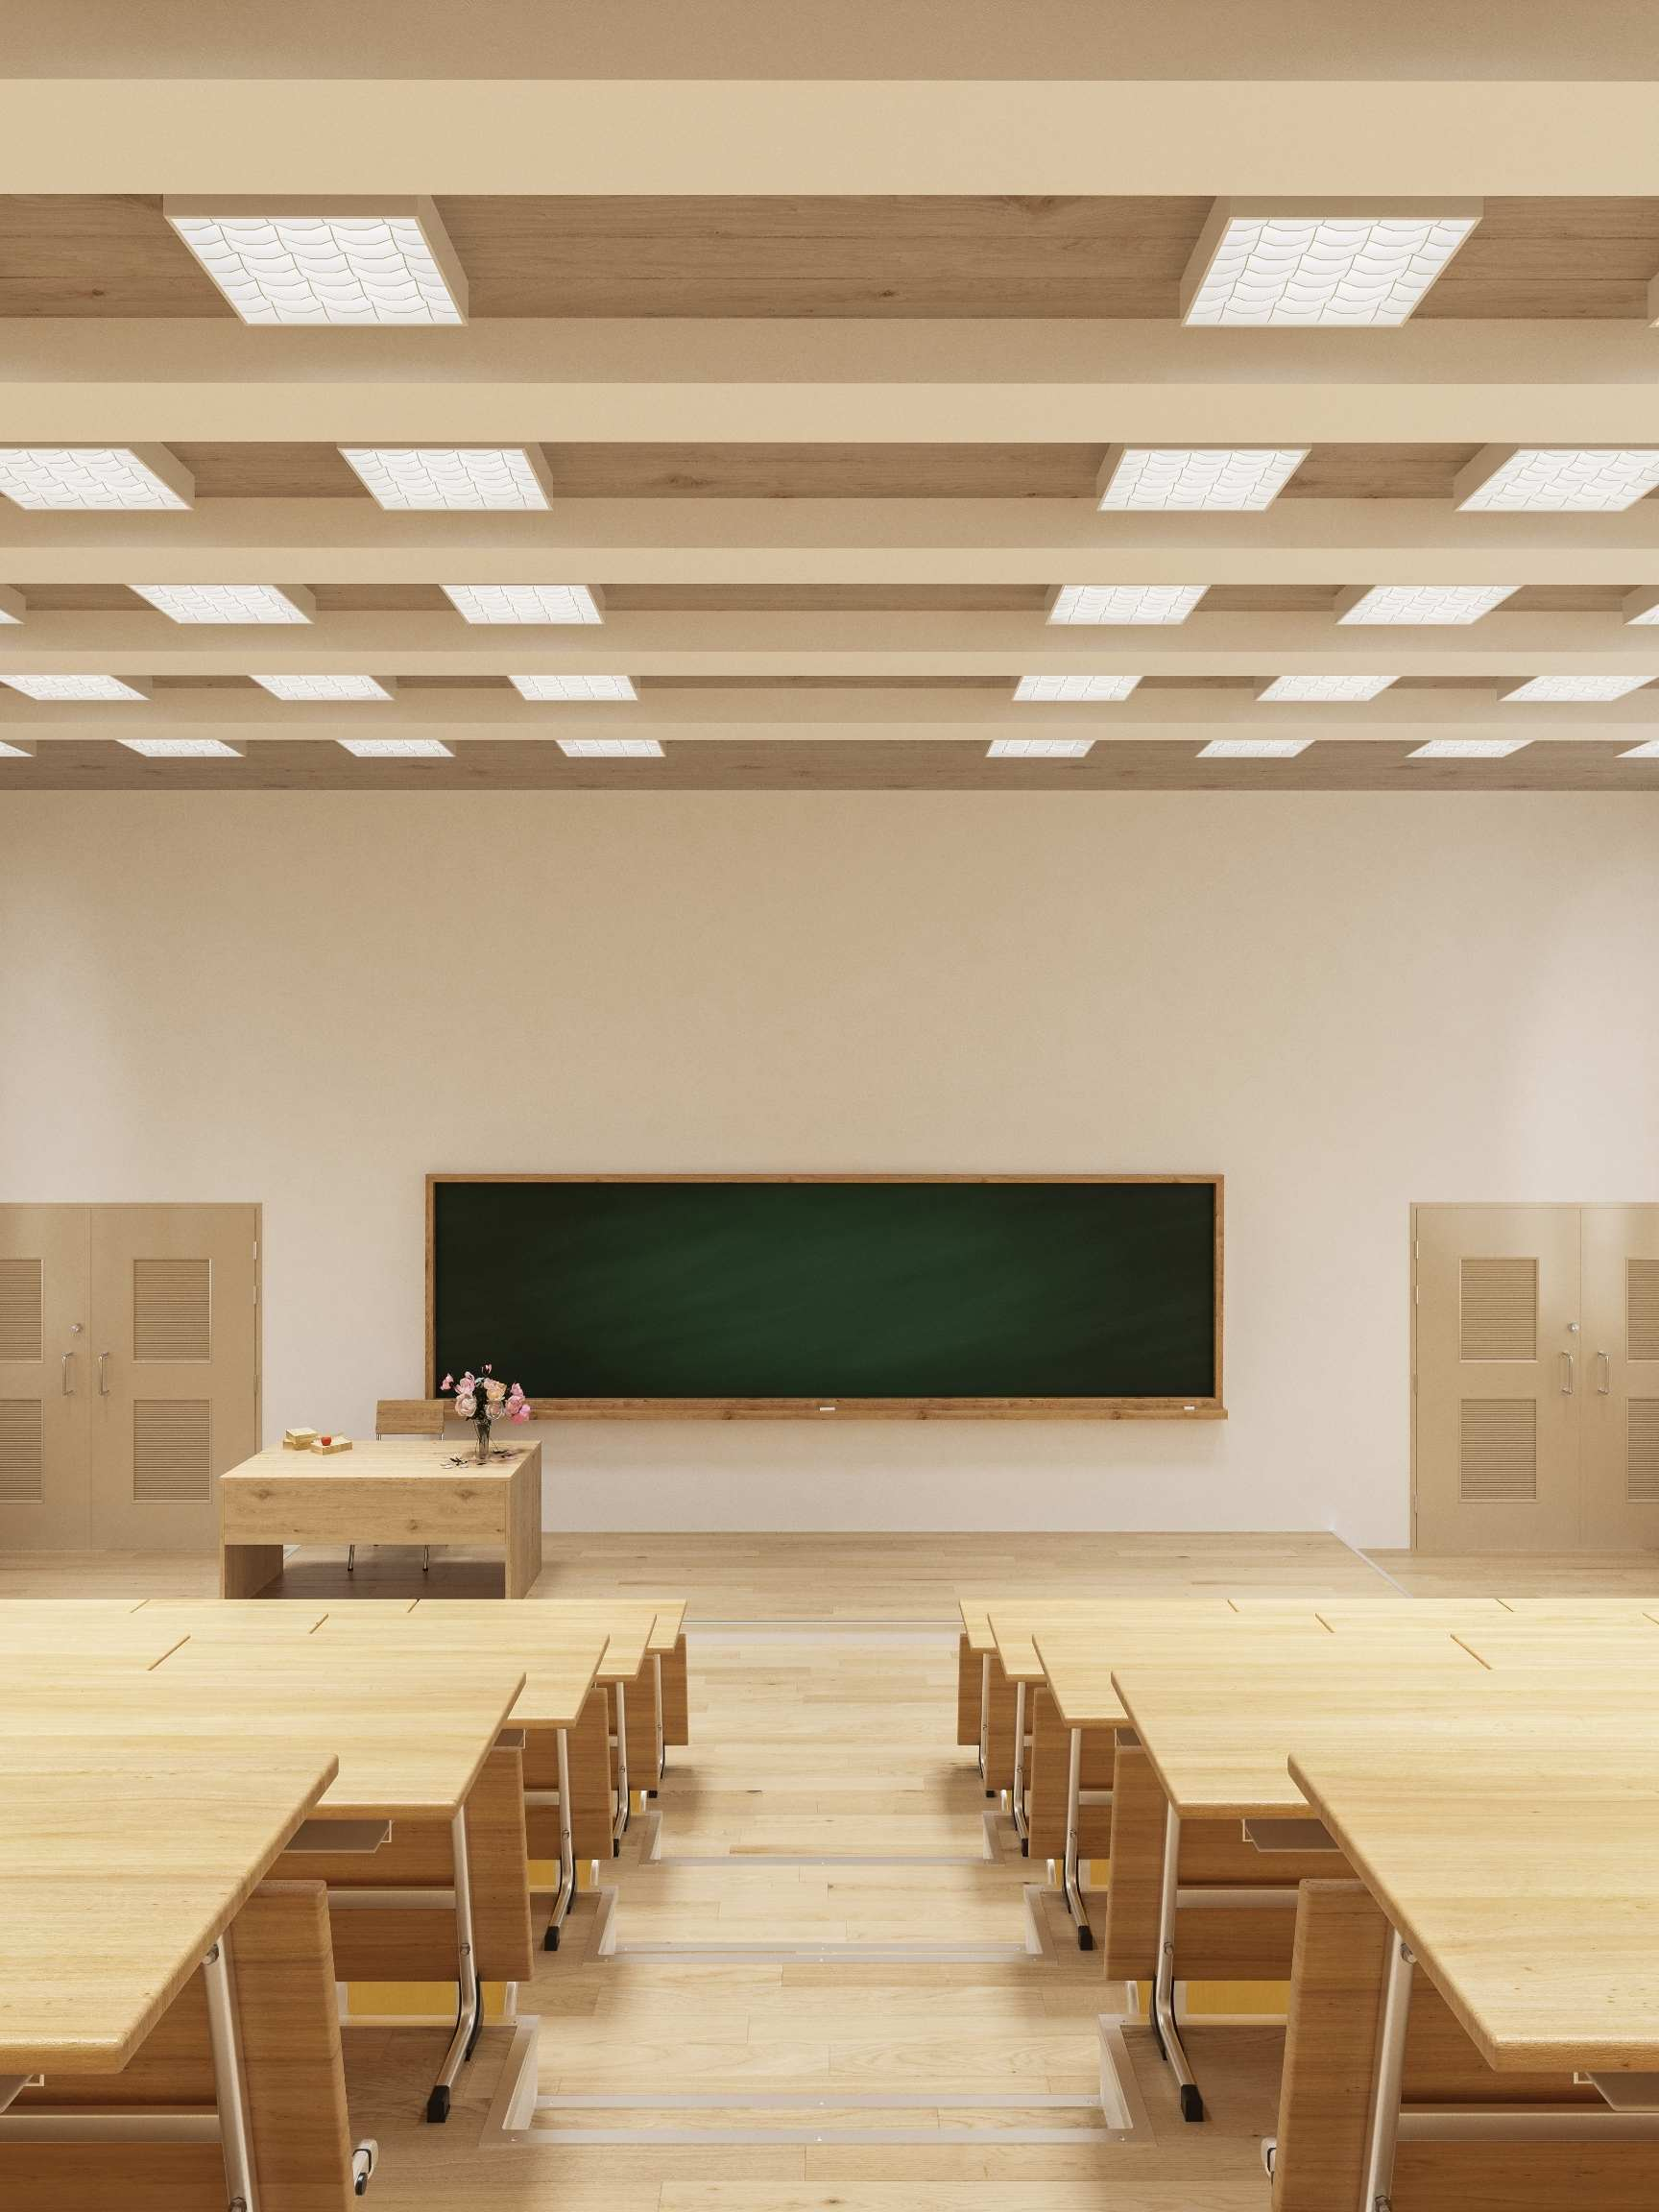 Lecture Theatre At Unsw